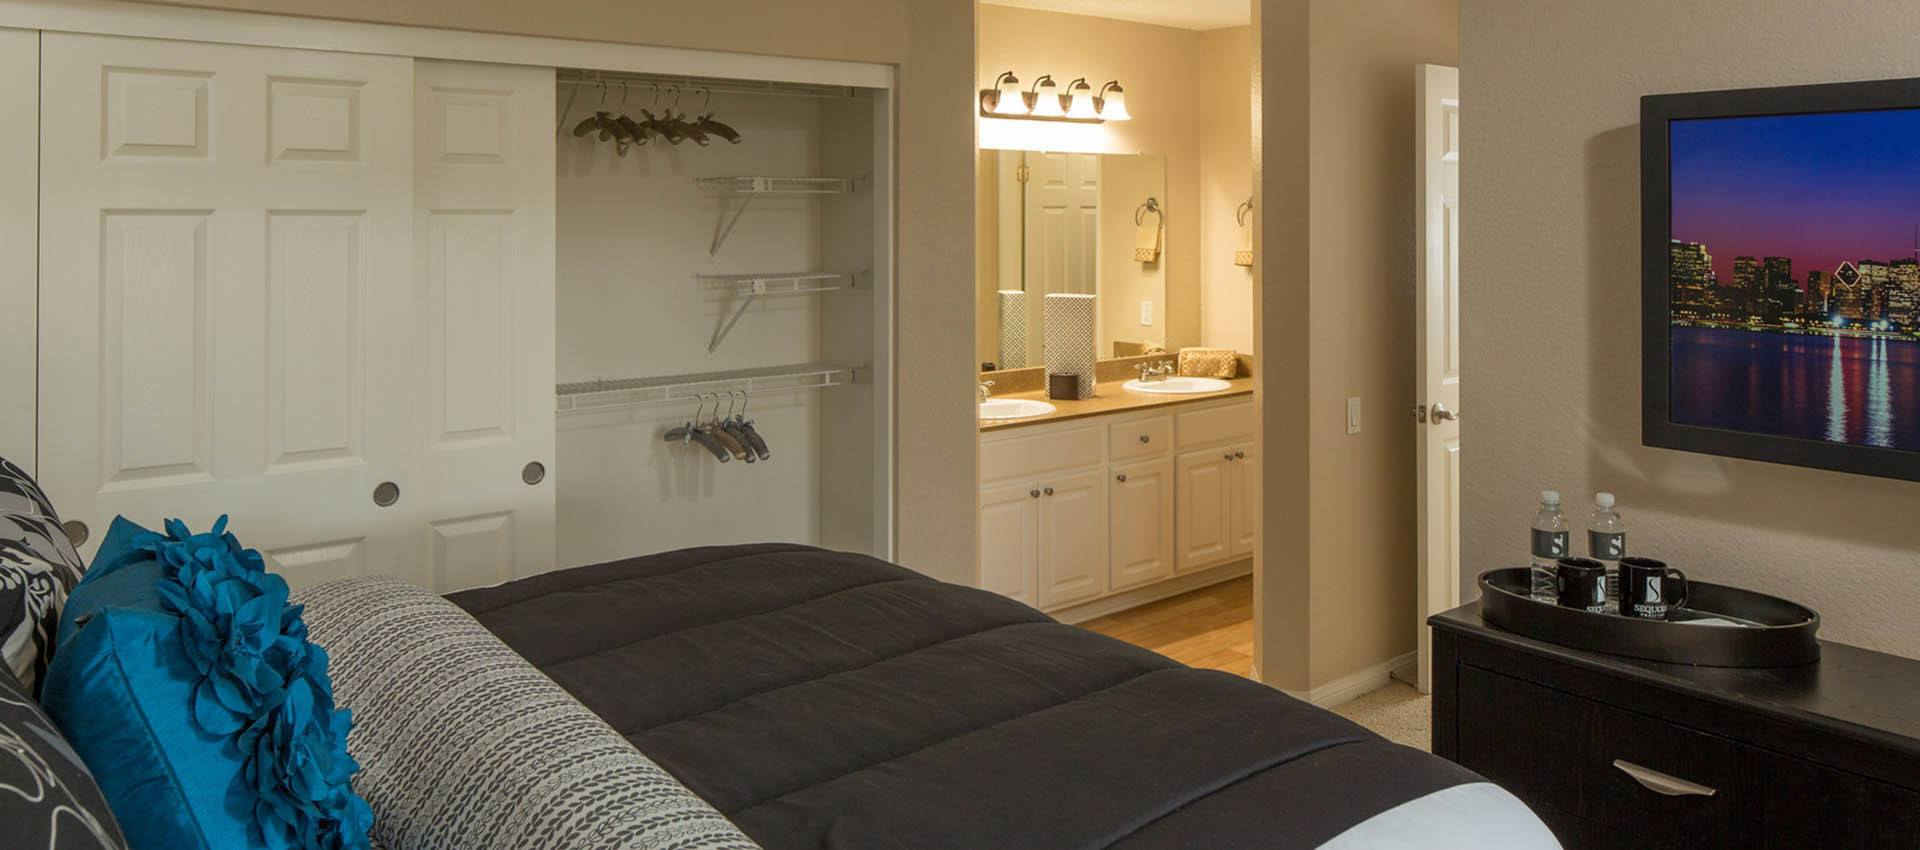 Spacious Master Bedroom at Hidden Hills Condominium Rentals in Laguna Niguel, CA